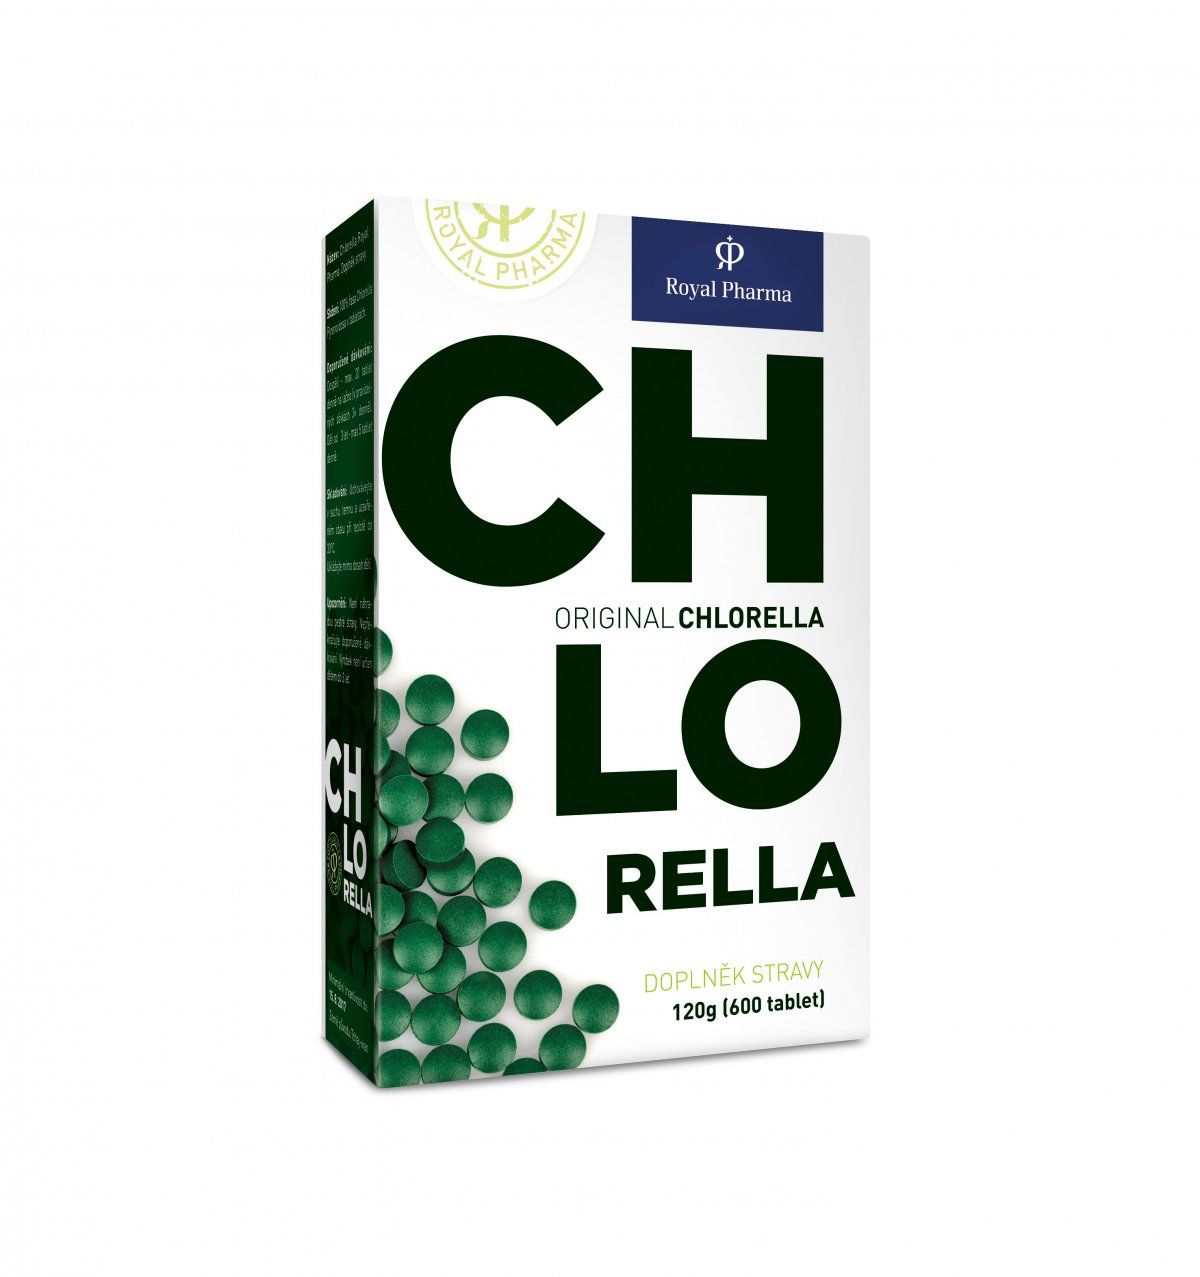 Chlorella Royal Pharma Počet tablet: 250 tablet